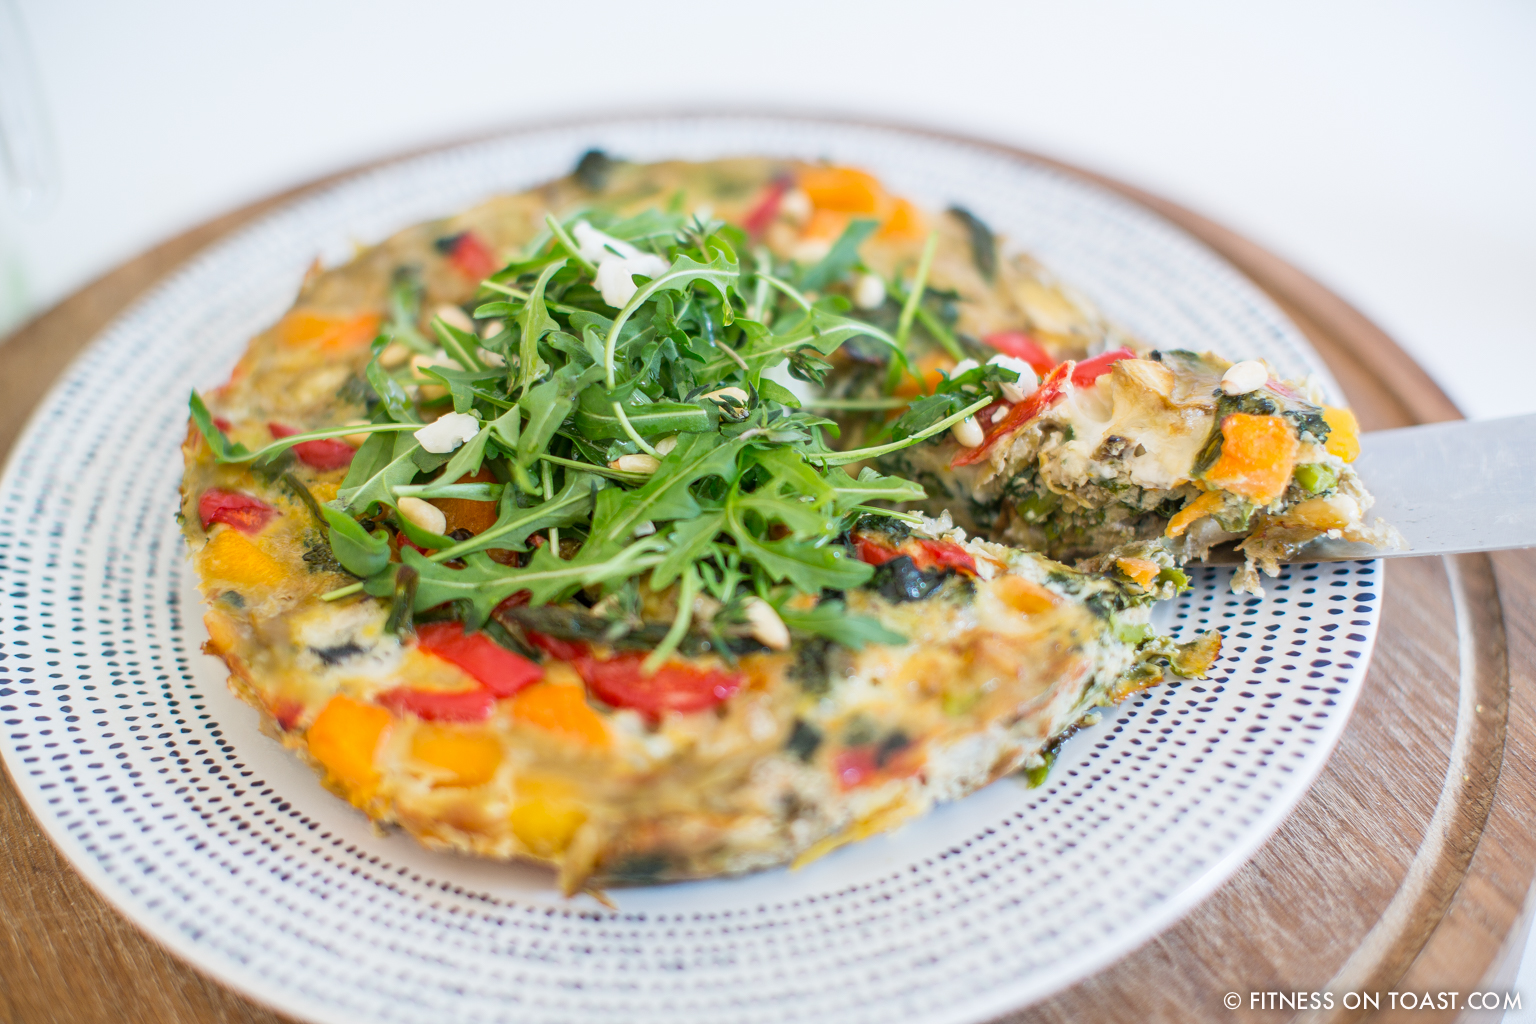 Fitness On Toast Faya Blog Post Blue Diamond Almonds Vegetable Frittata Healthy Recipe Idea Food Blog Recipes